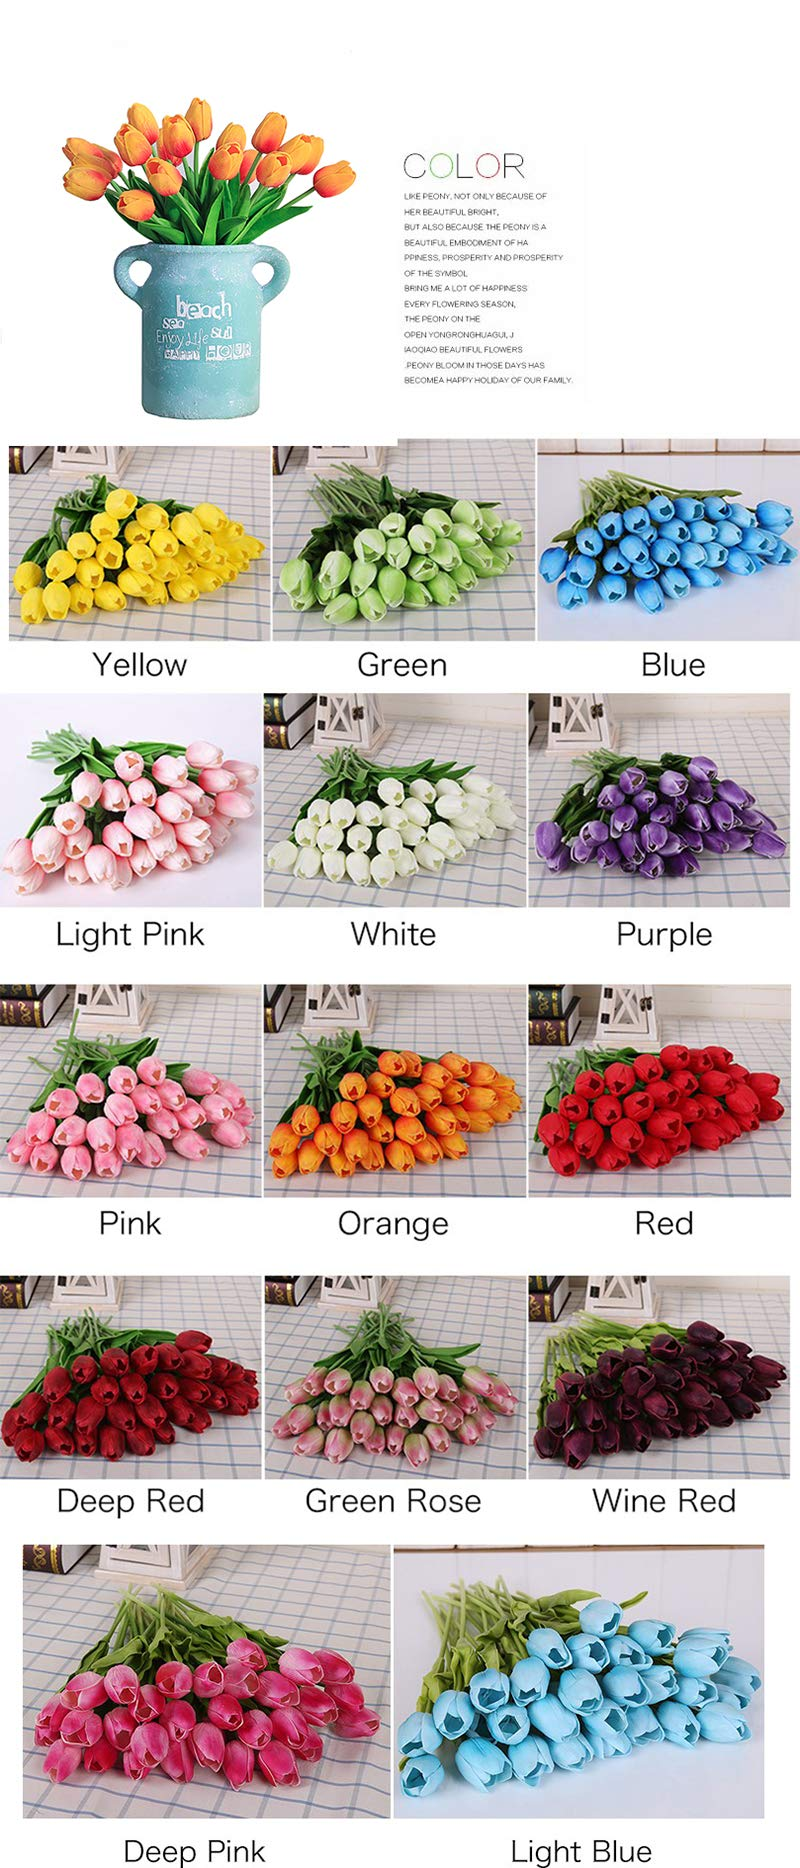 21-Pcs-Real-Touch-Tulip-Artificial-Flowers-Artificial-Fake-Silk-Flowers-Bridal-Wedding-Decorations-Wedding-Decoration-Spring-Simulation-Flowers-Vintage-Wedding-Decorations-Flowers